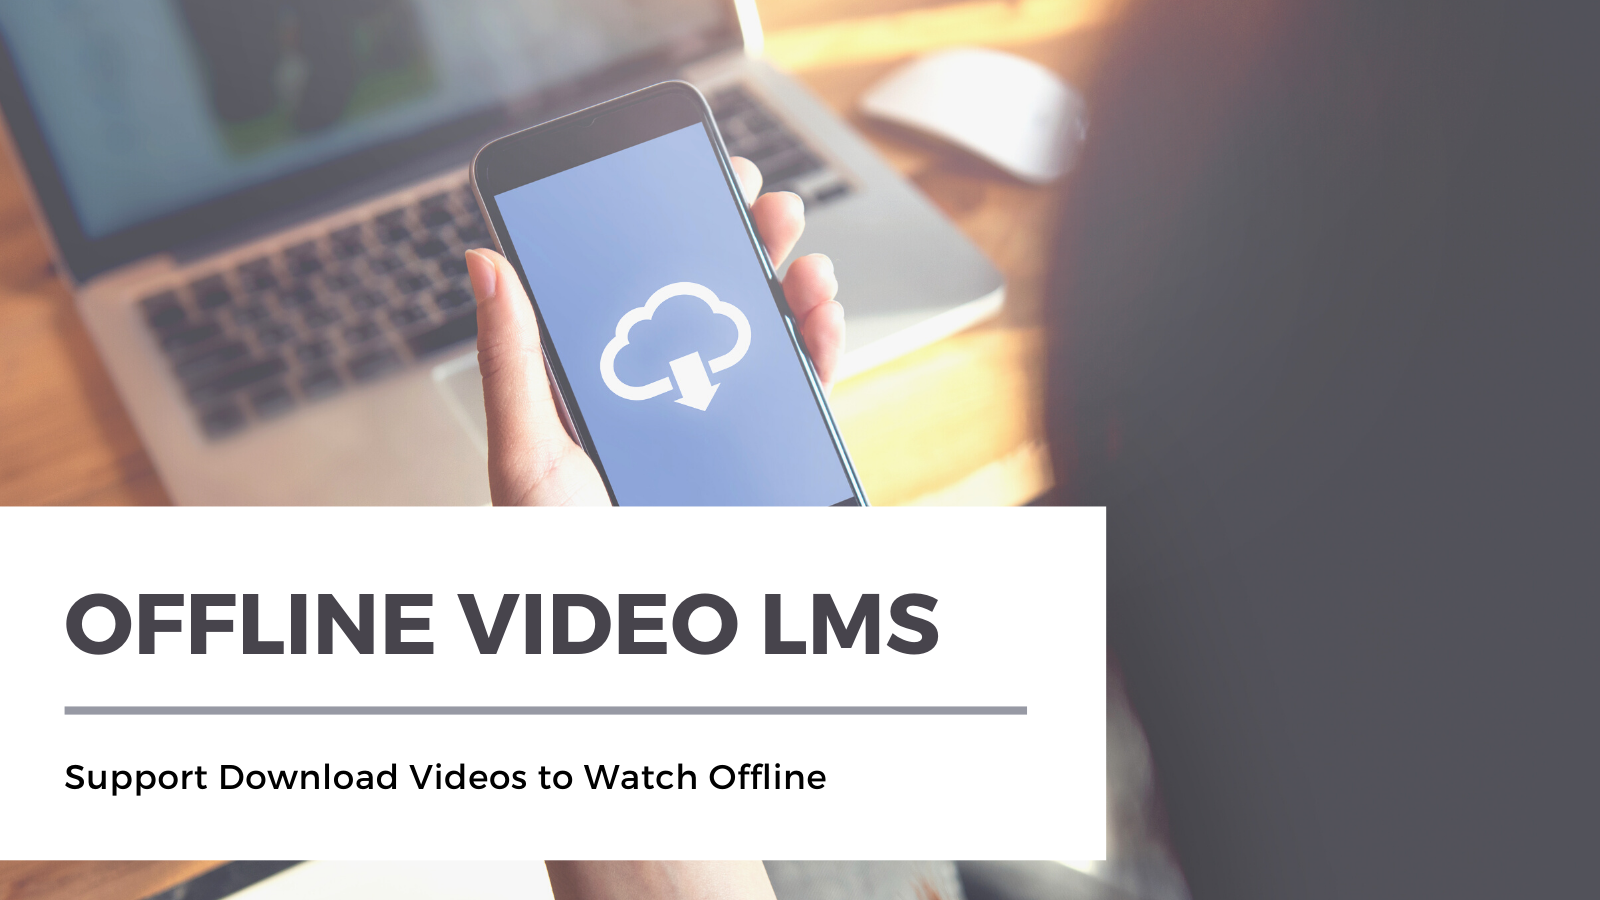 Why your online course should support download videos to watch offline?